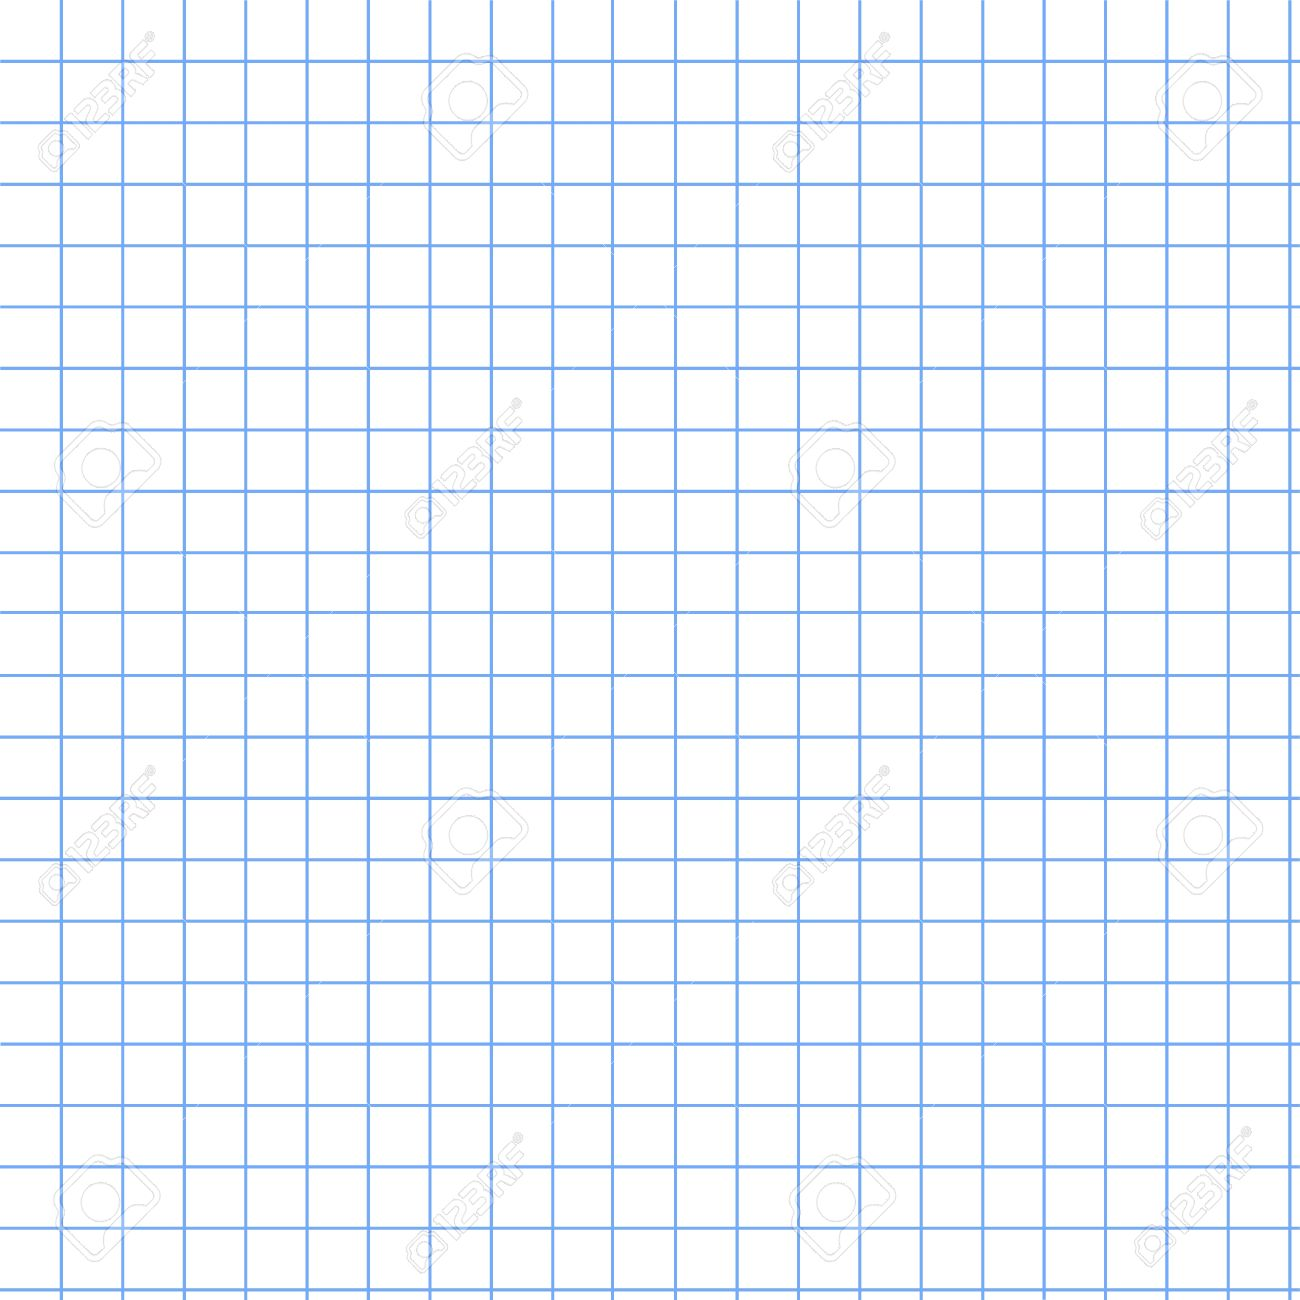 worksheet Graphing Grid an illustative grid graph pattern or background stock photo 18077895